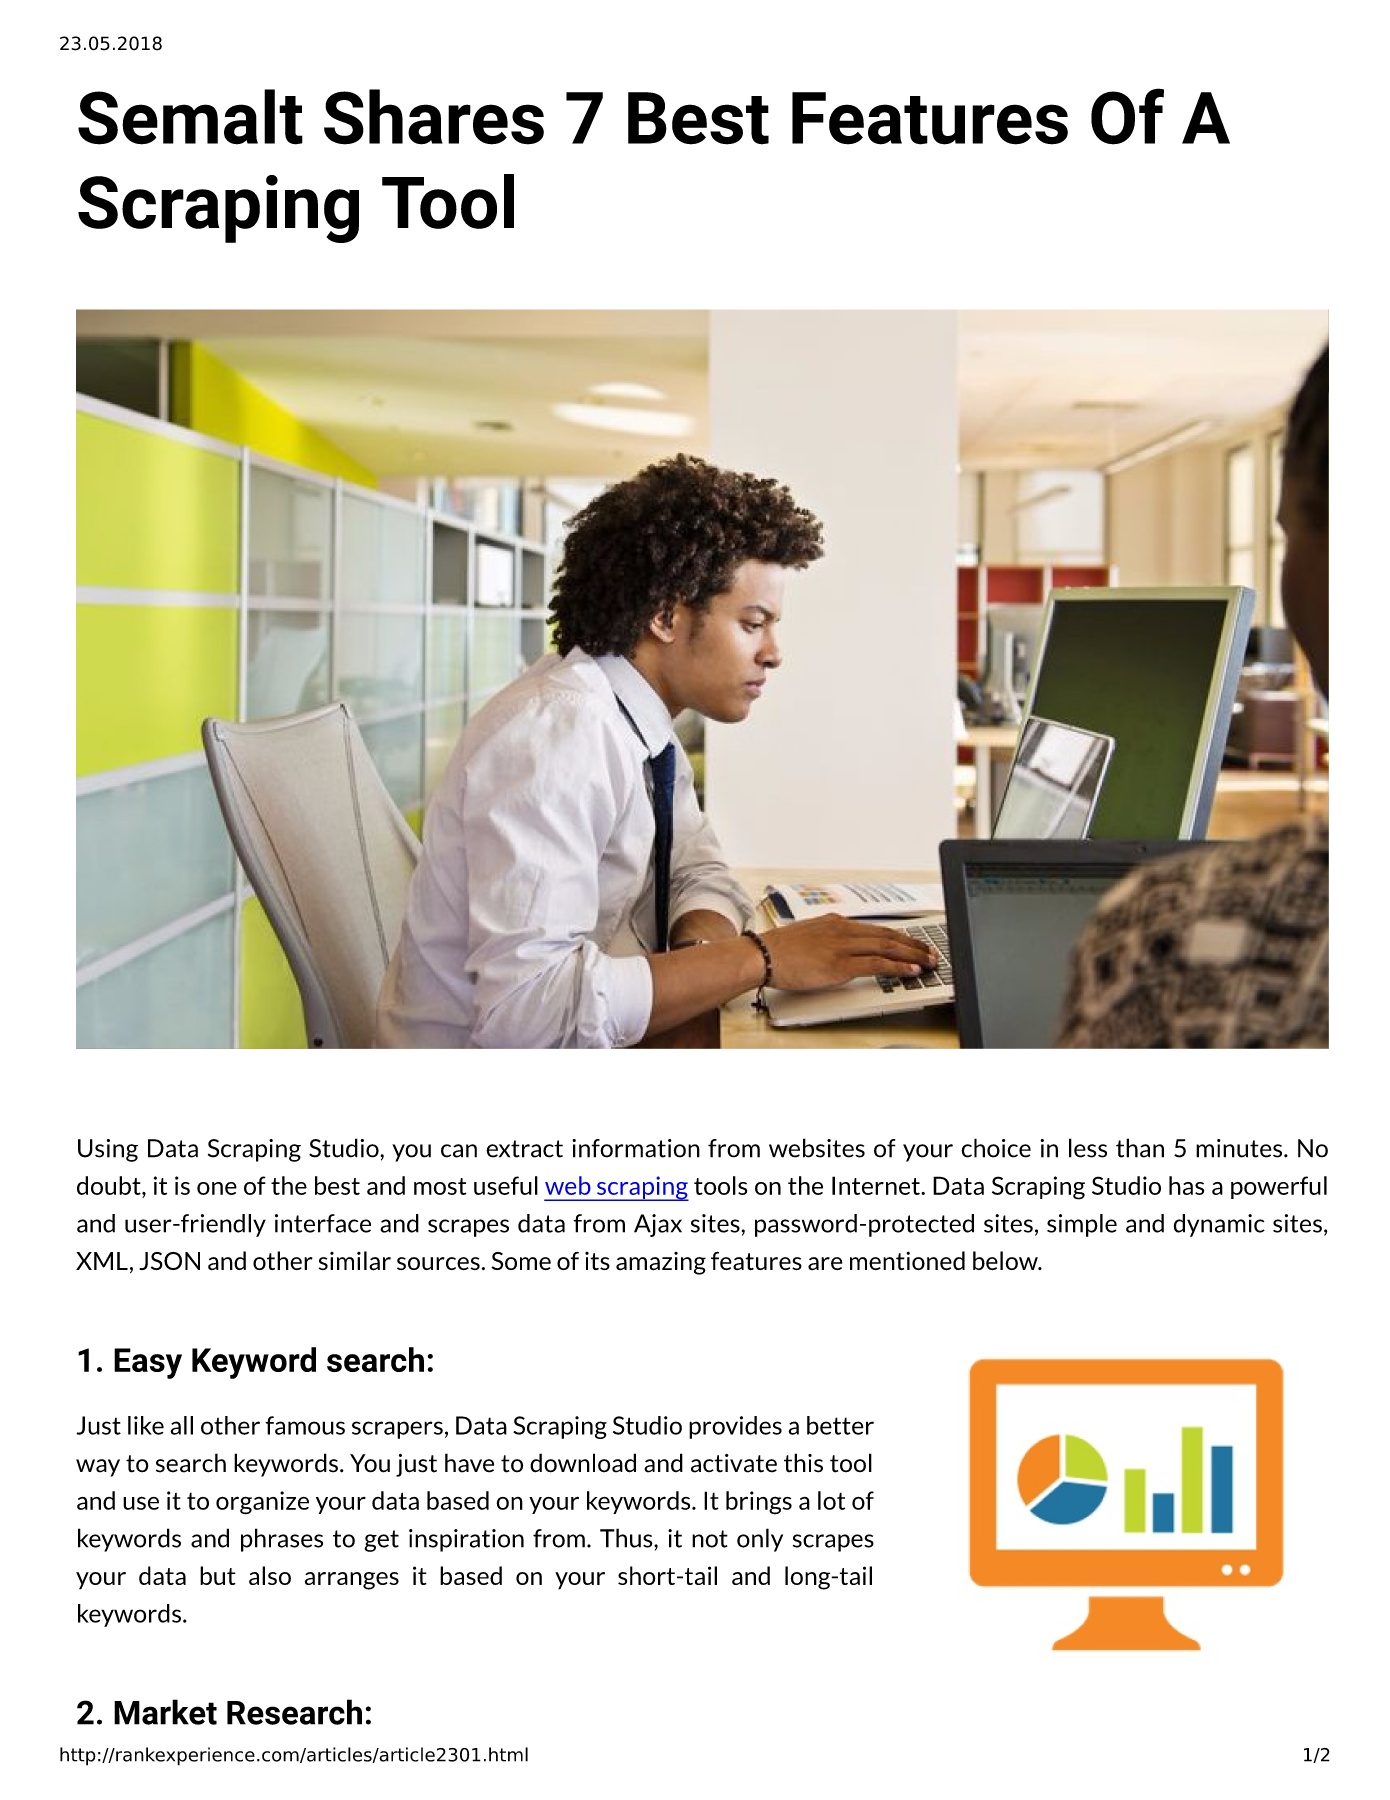 Semalt Shares 7 Best Features Of A Scraping Tool Pages 1 - 2